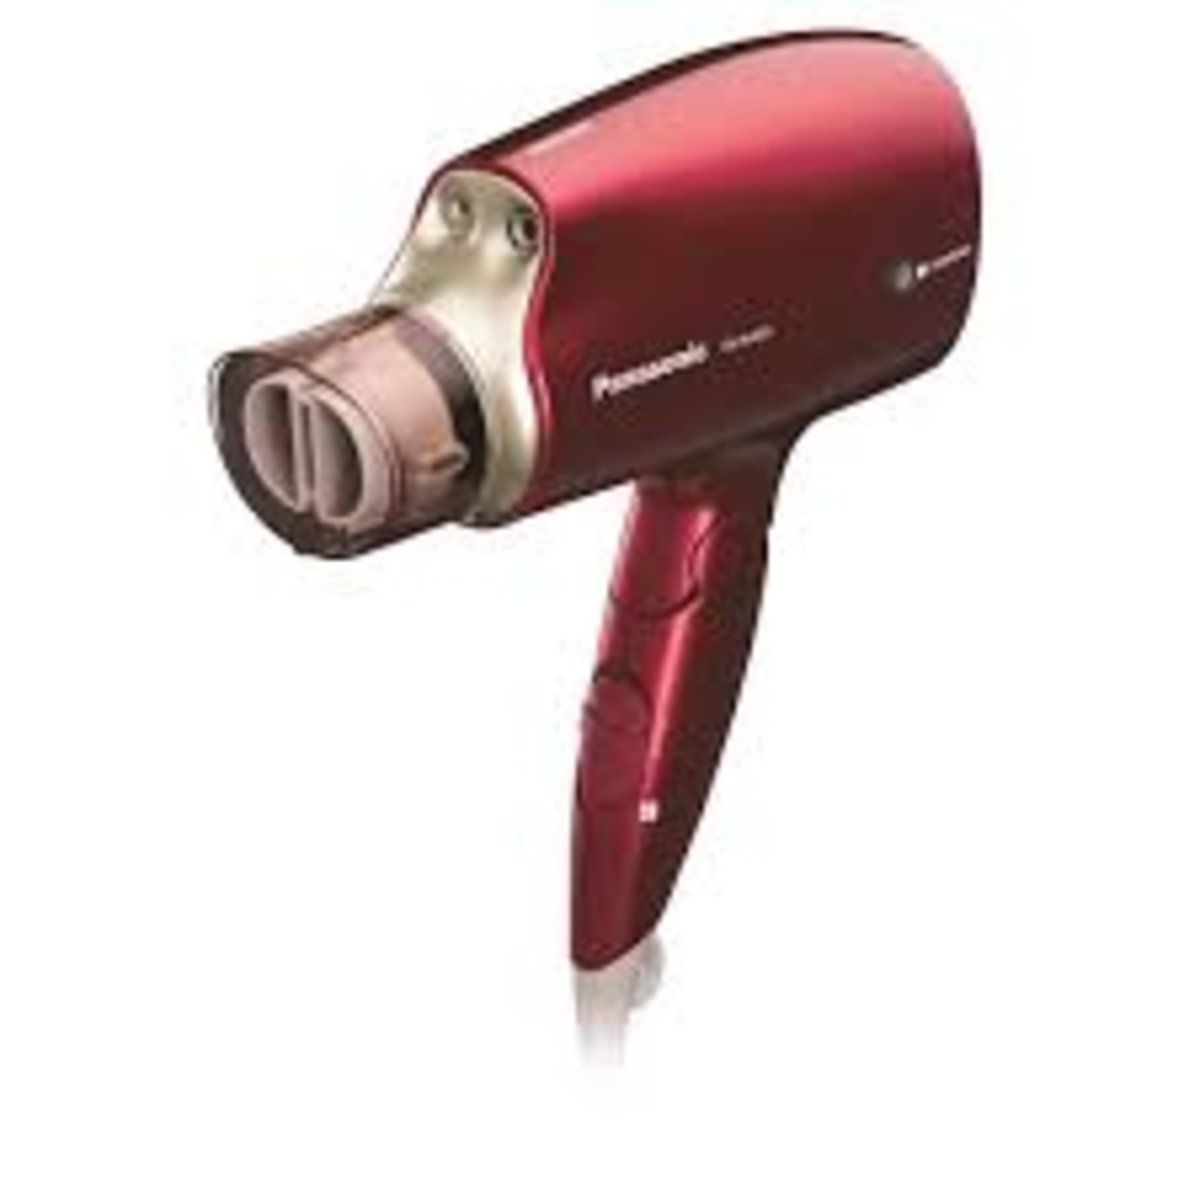 Platinum nanoe™ Hair Dryer EH-NA45 Red(Authorized Imported)